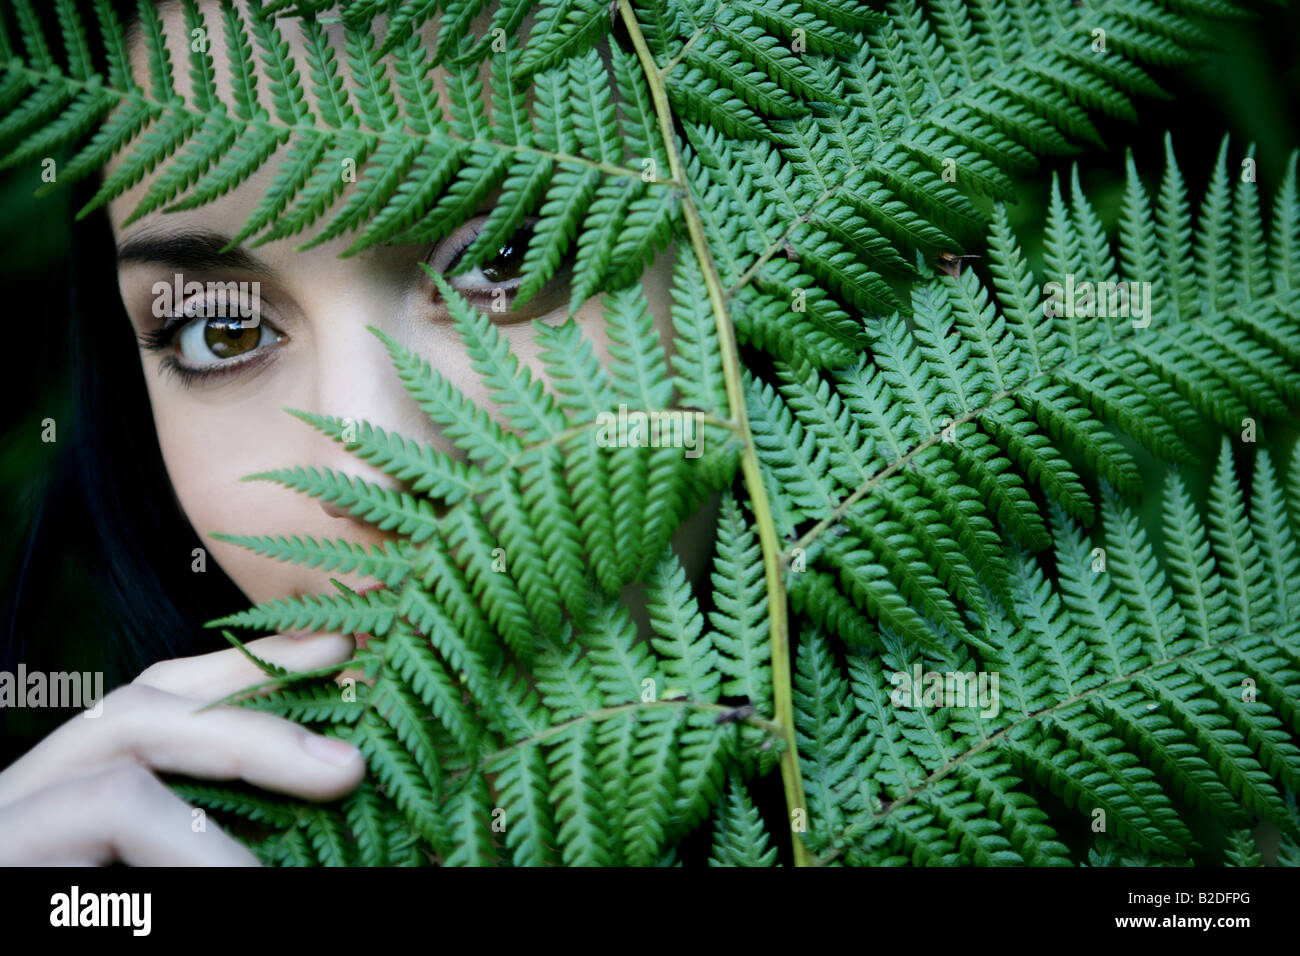 Young woman behind leaves. - Stock Image